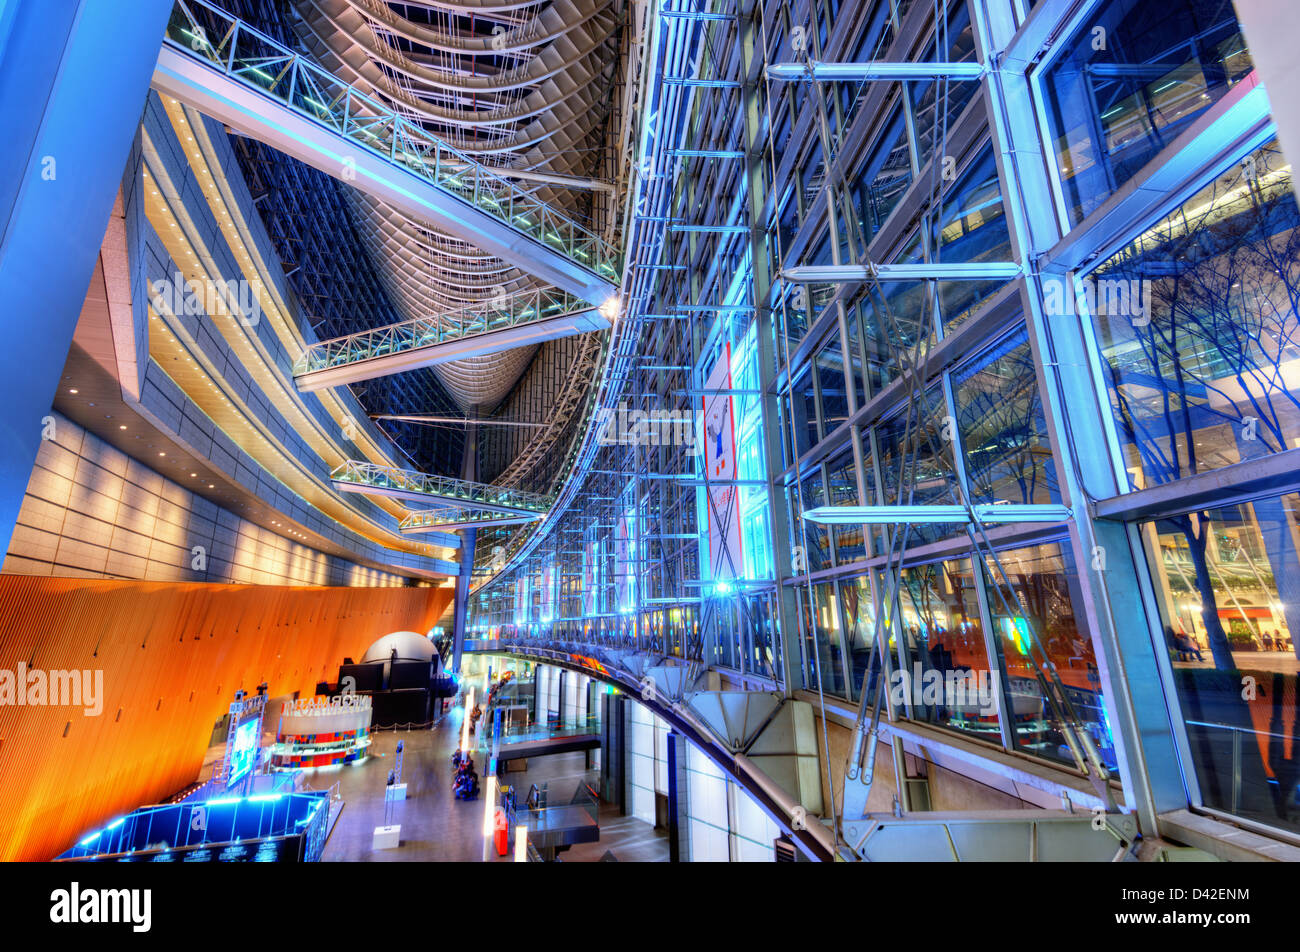 International Forum in the Ginza District of Tokyo, Japan. Stock Photo